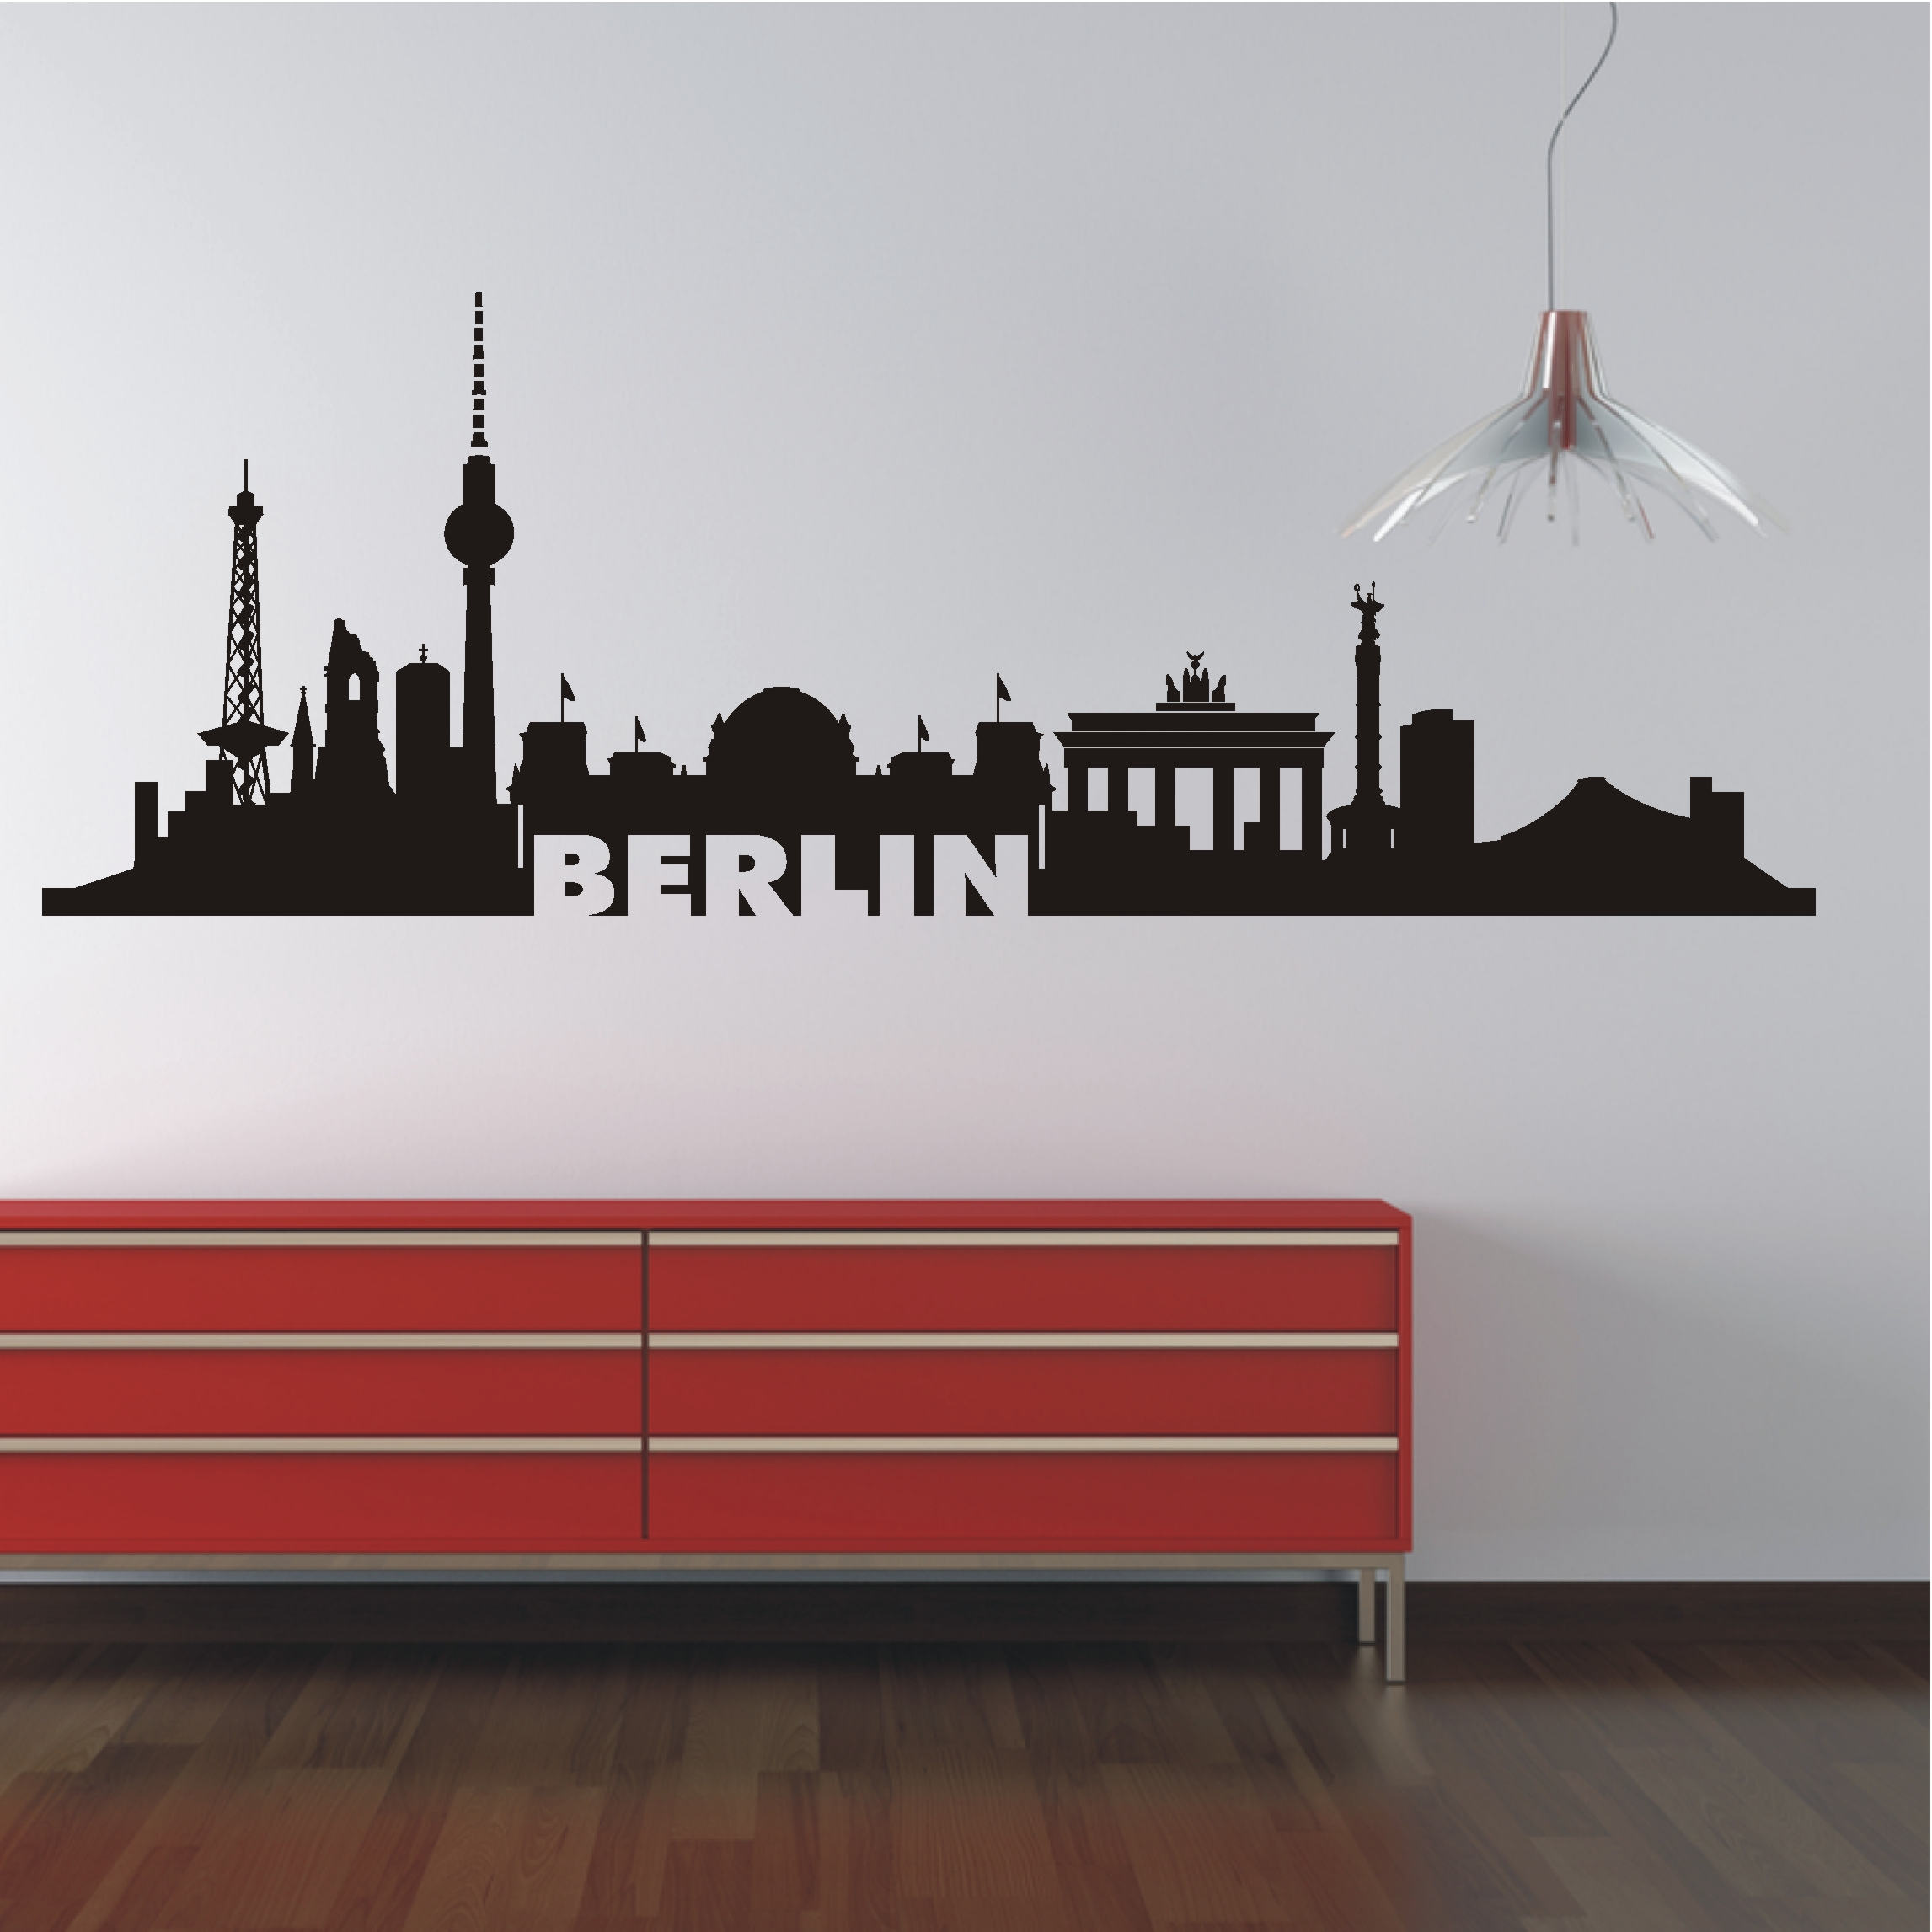 Deko Shop 24.de Wandtattoo Skyline Berlin